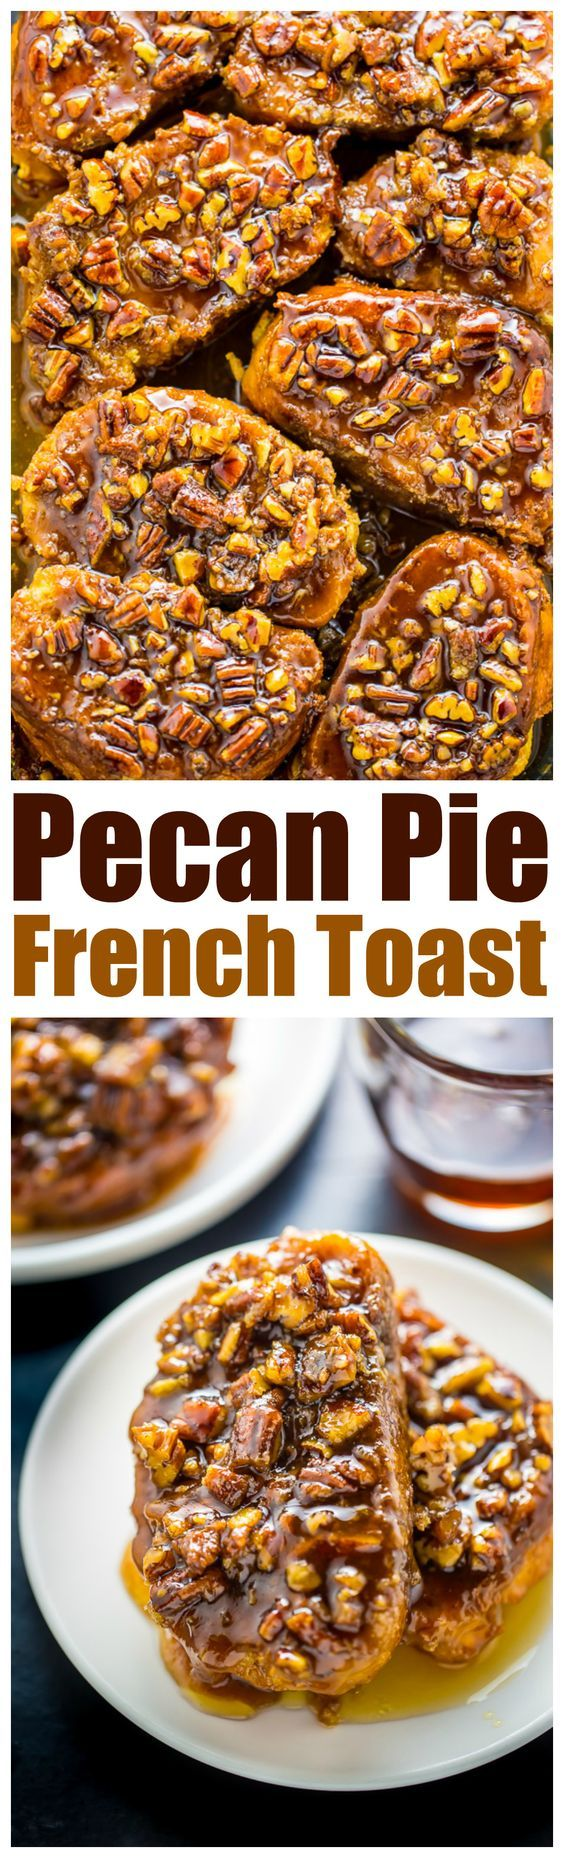 Incredibly EASY Overnight Pecan Pie French Toast! Perfect for holiday brunch.